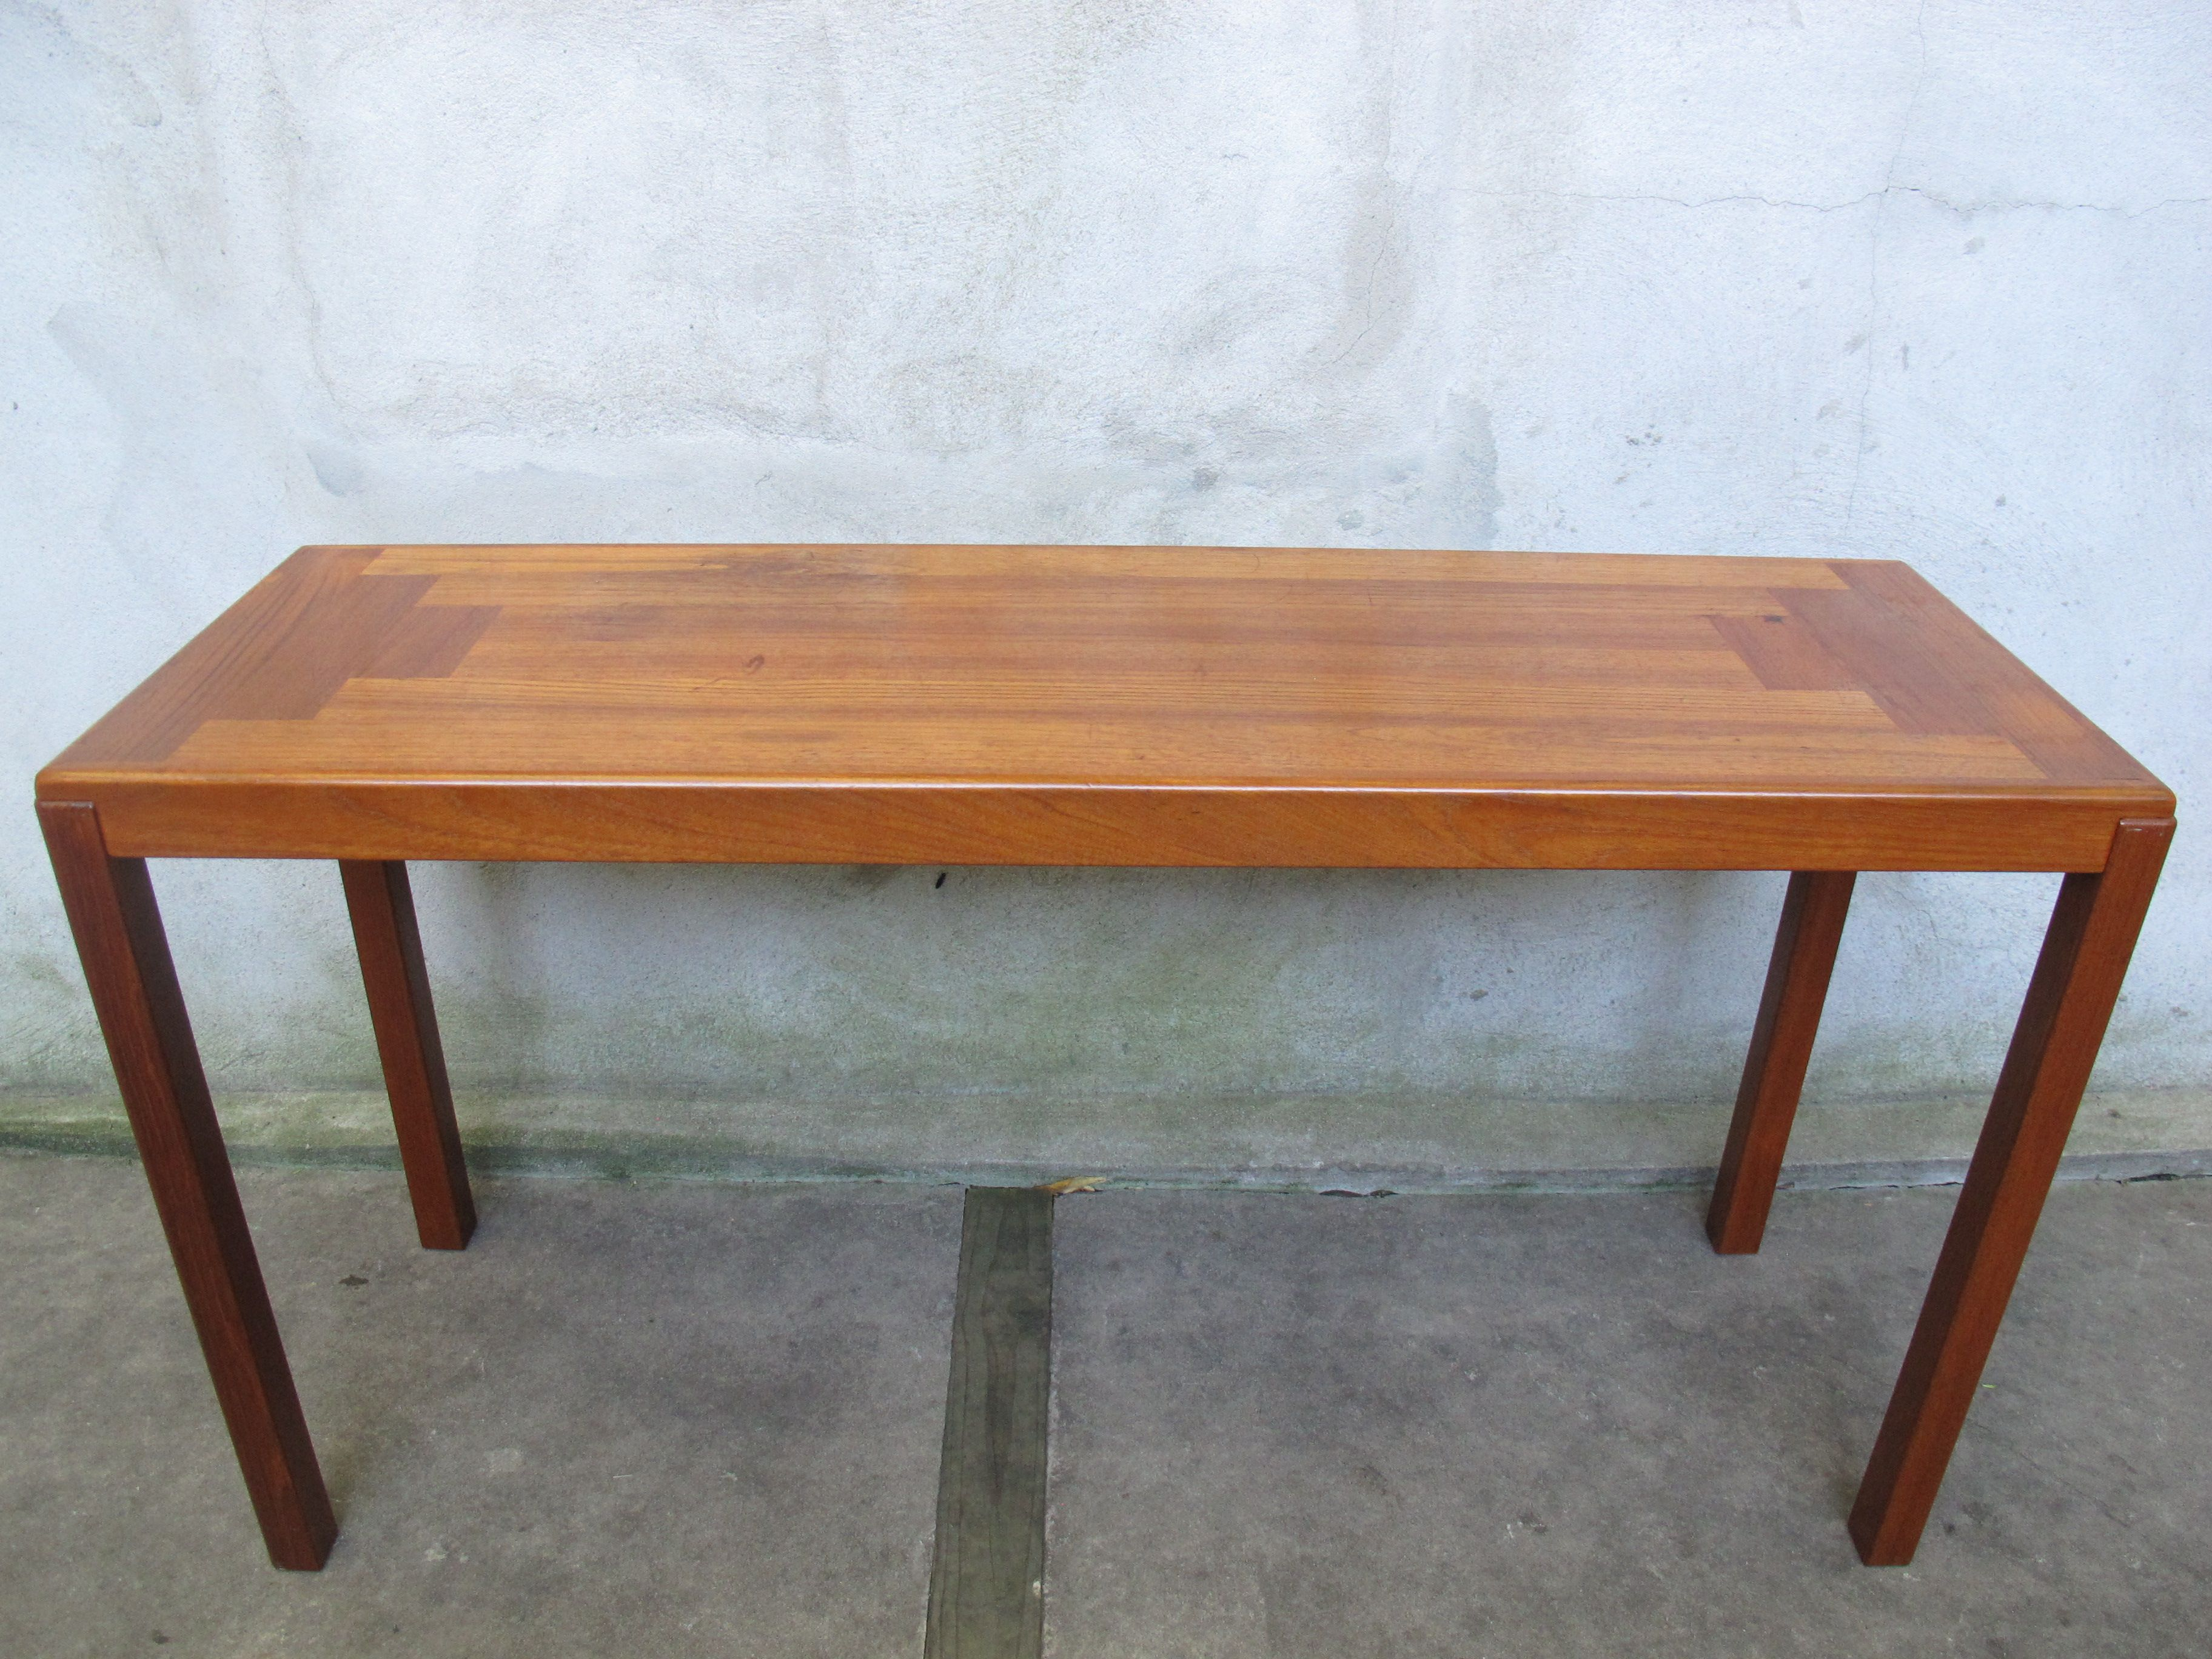 Danish modern teak console table by vejle stole sold items danish modern teak console table by vejle stole geotapseo Image collections